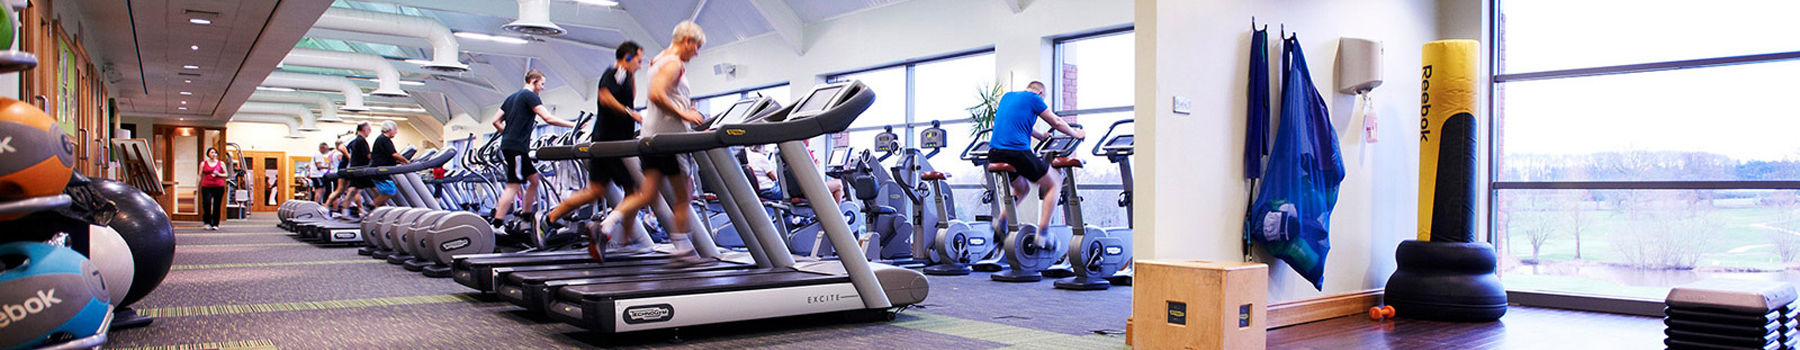 Marketing Your Fitness Center Business with Landing Pages